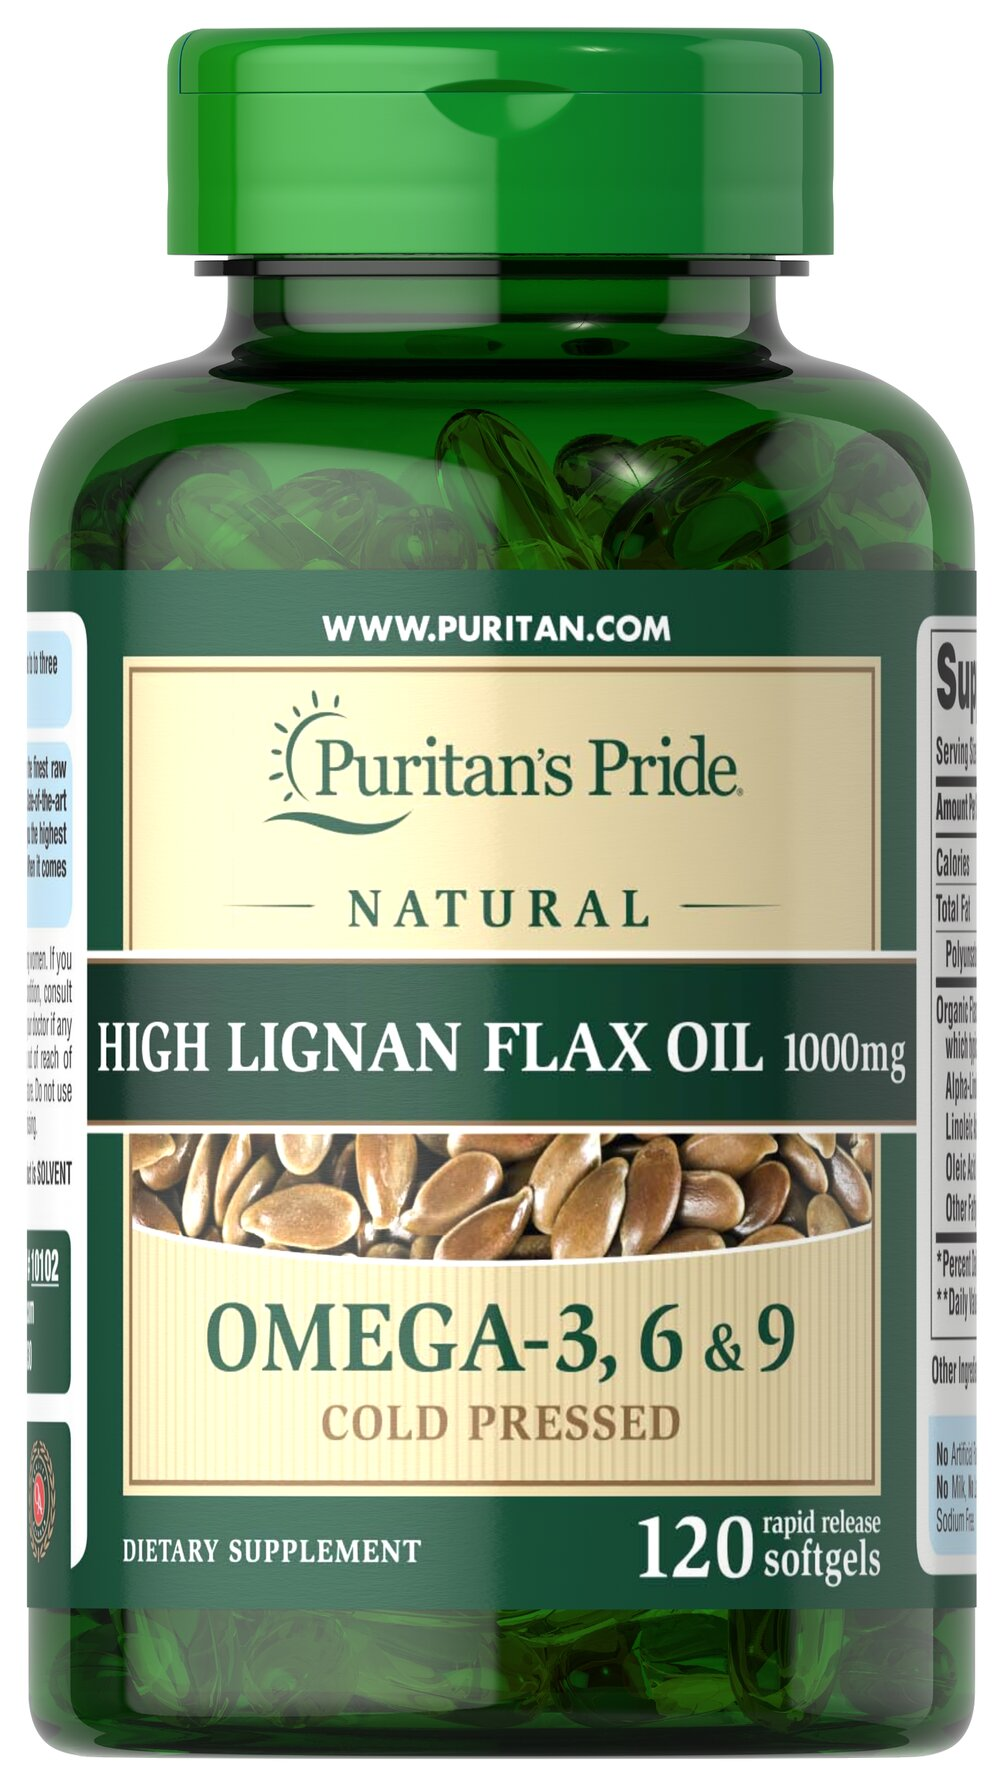 Flax Oil 1000 mg <p><strong>Flax</strong> is one of the premium sources of <strong>Alpha-Linolenic Acid (Omega-3) and Linoleic Acid (Omega-6)</strong>, essential fatty acids that can't be made by the body and must be obtained from diet. Fatty acids play a role in providing an energy source for the body.** Our flax oil provides all these benefits, plus it's derived from 100% organic flax, which means it's free from chemicals, pesticides and herbicides.&lt